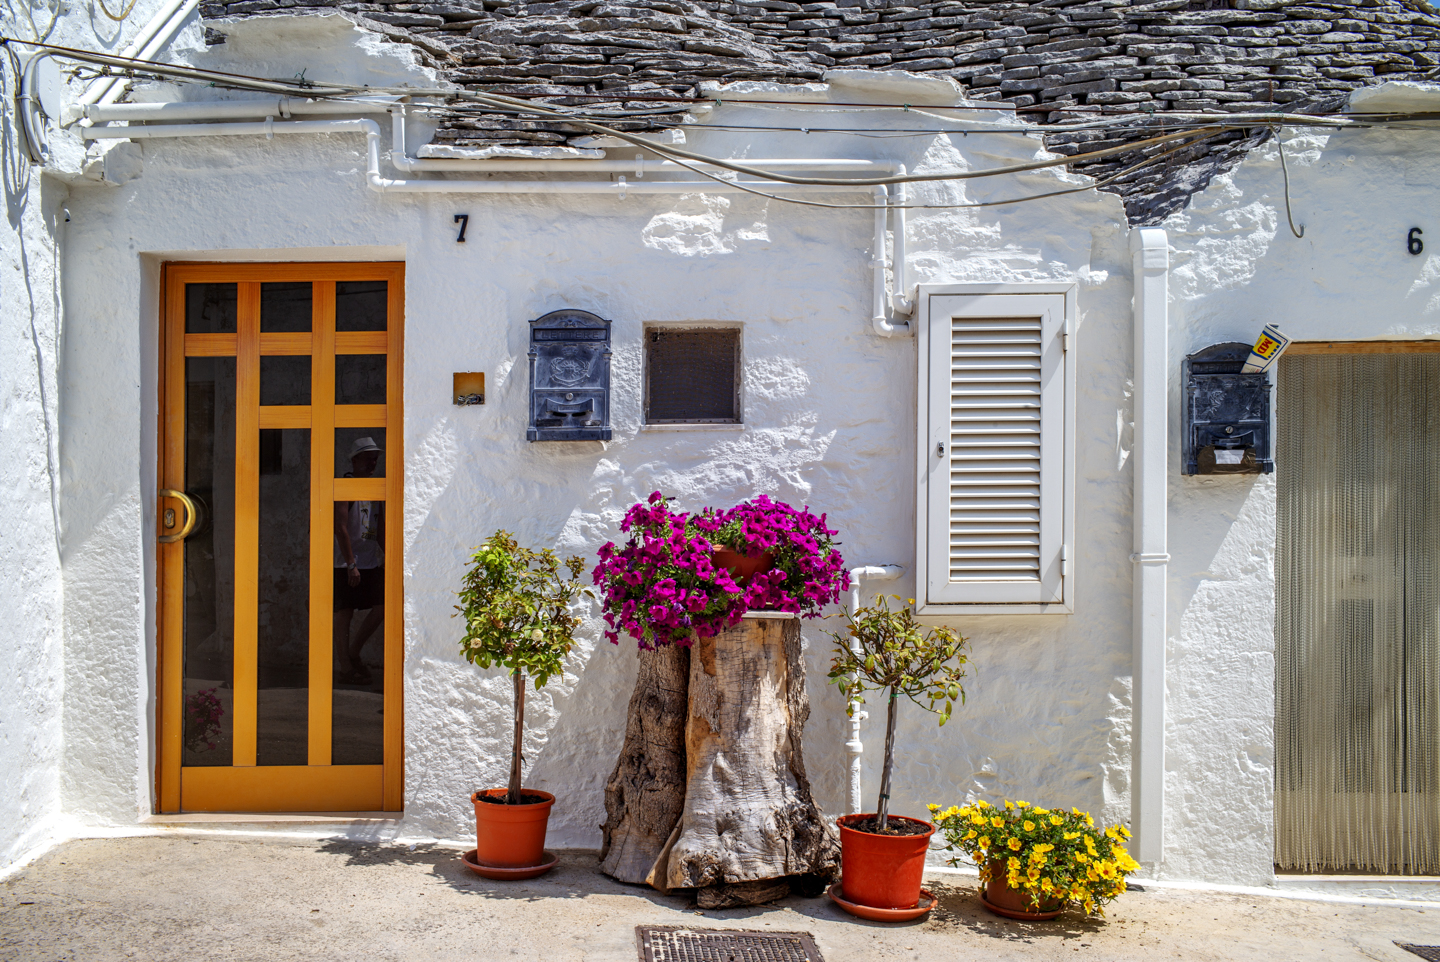 Trullo House Detail, Alberobello, Italy, August 13, 2018